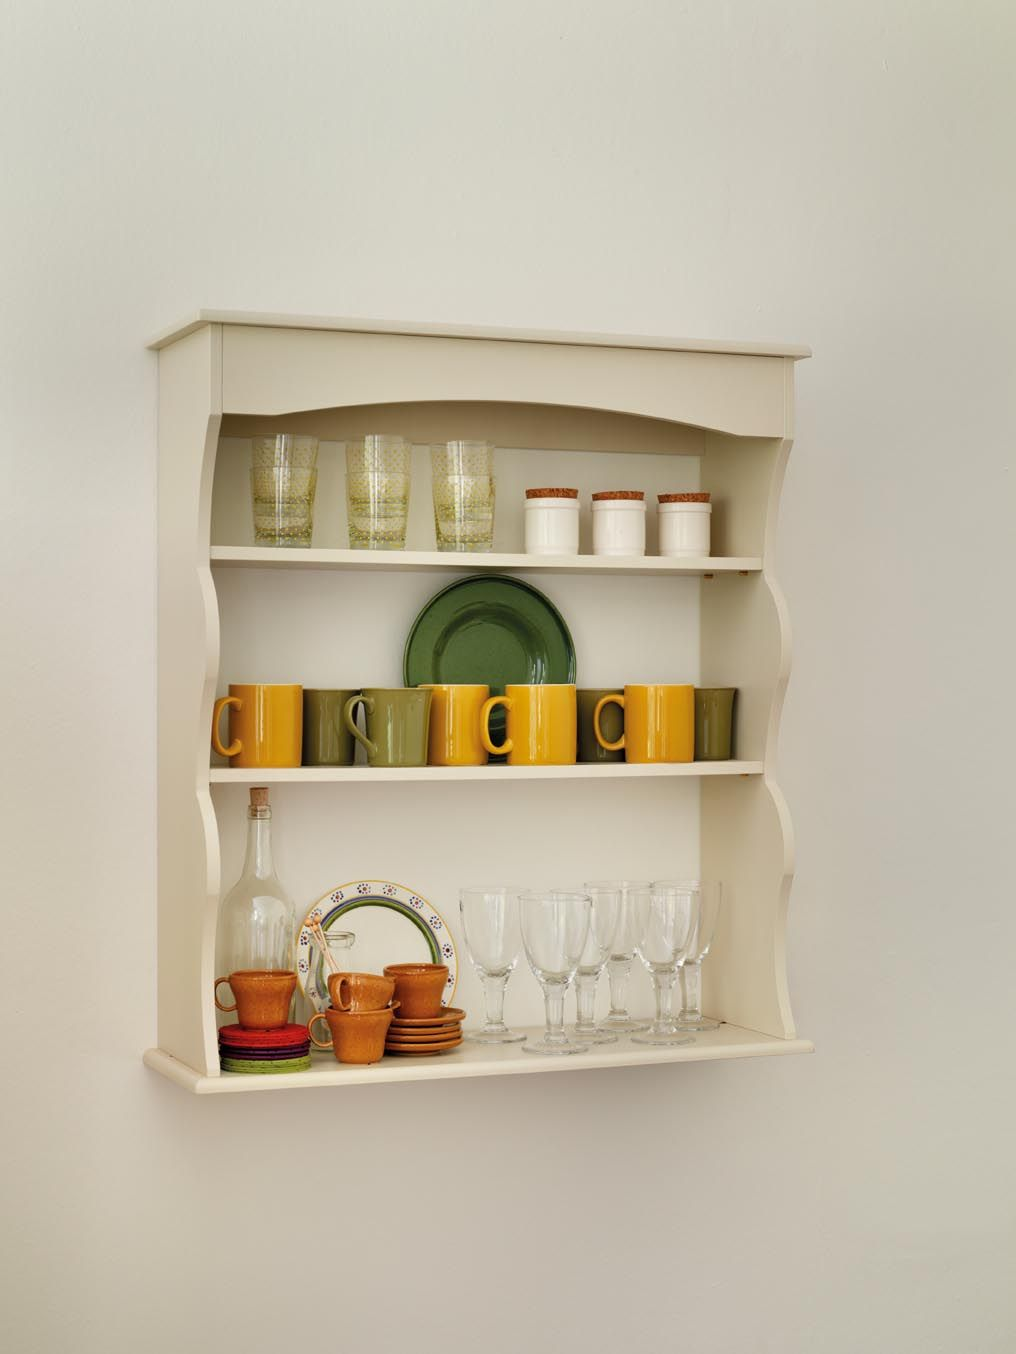 Decorative Kitchen Wall Shelves Kitchen Wall Shelves Wall Shelf